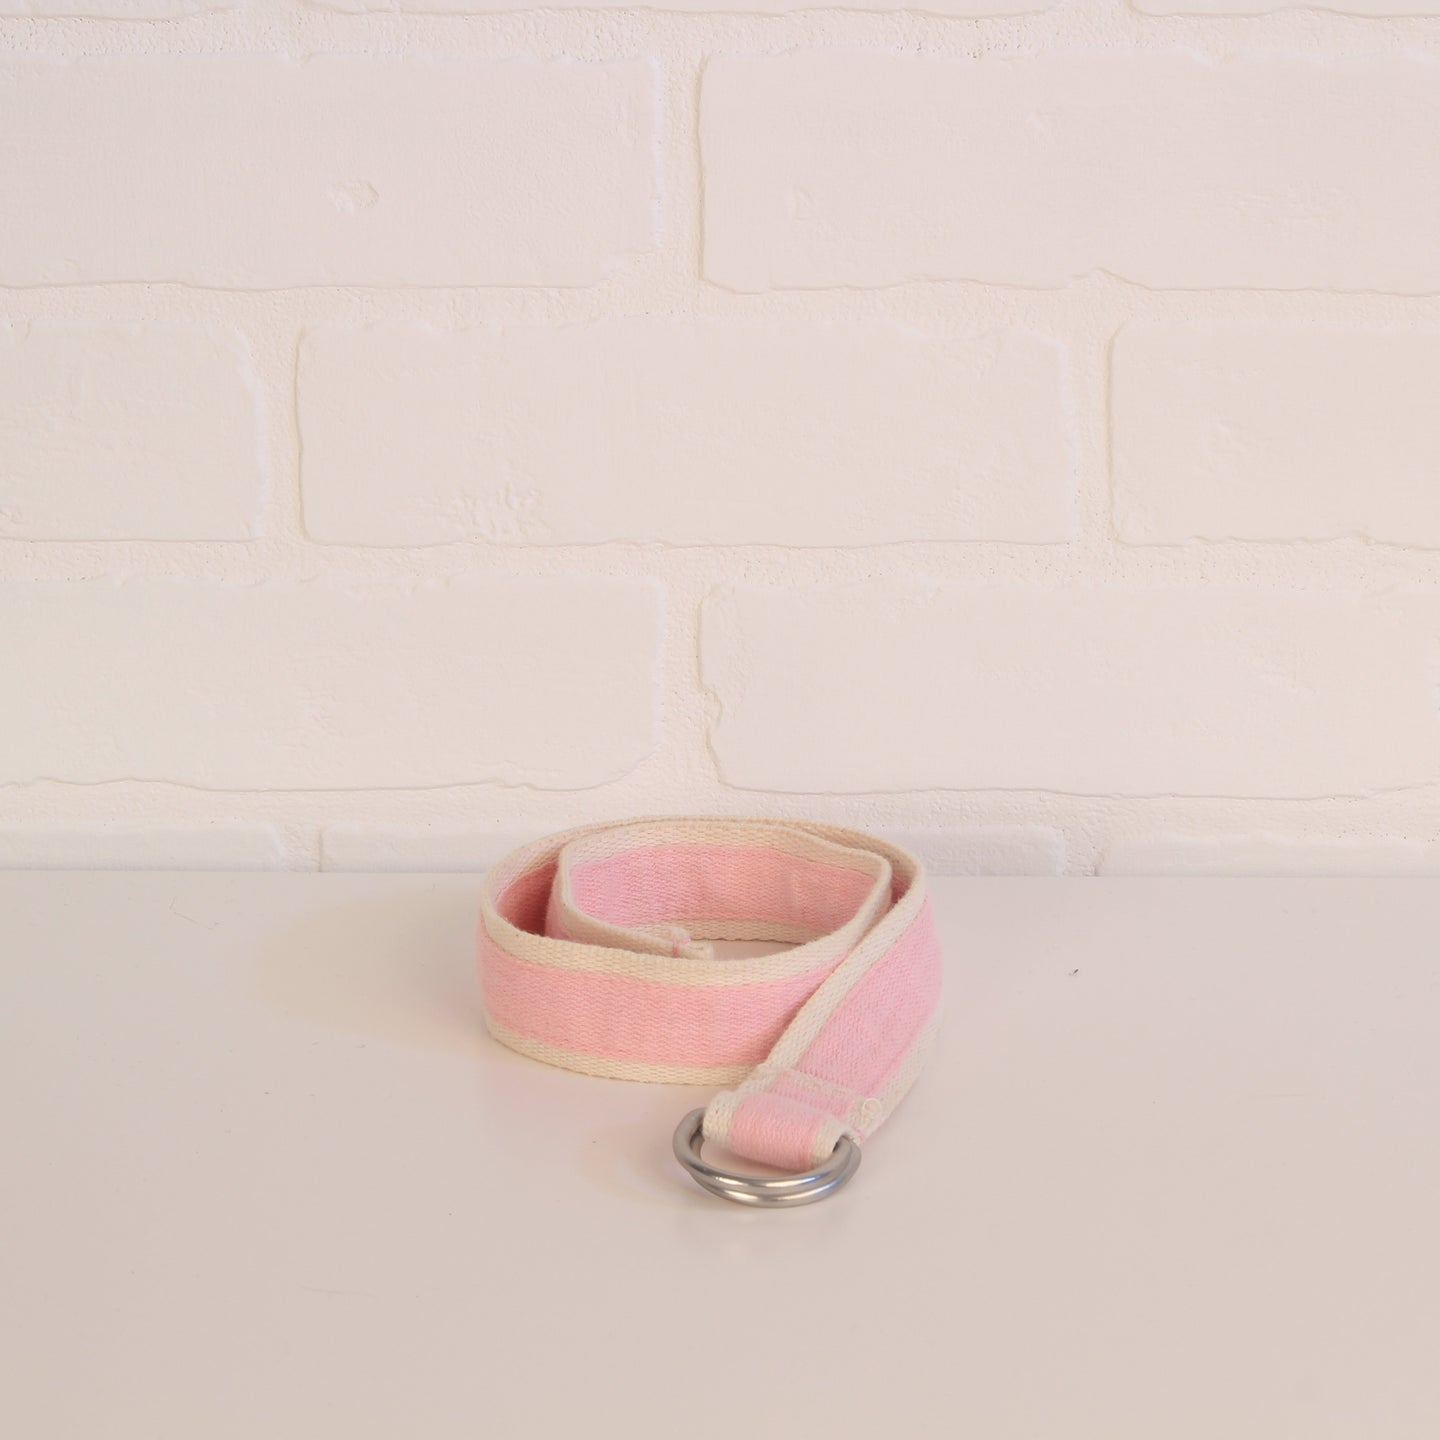 Belt: Pink Cotton Weave Belt (25